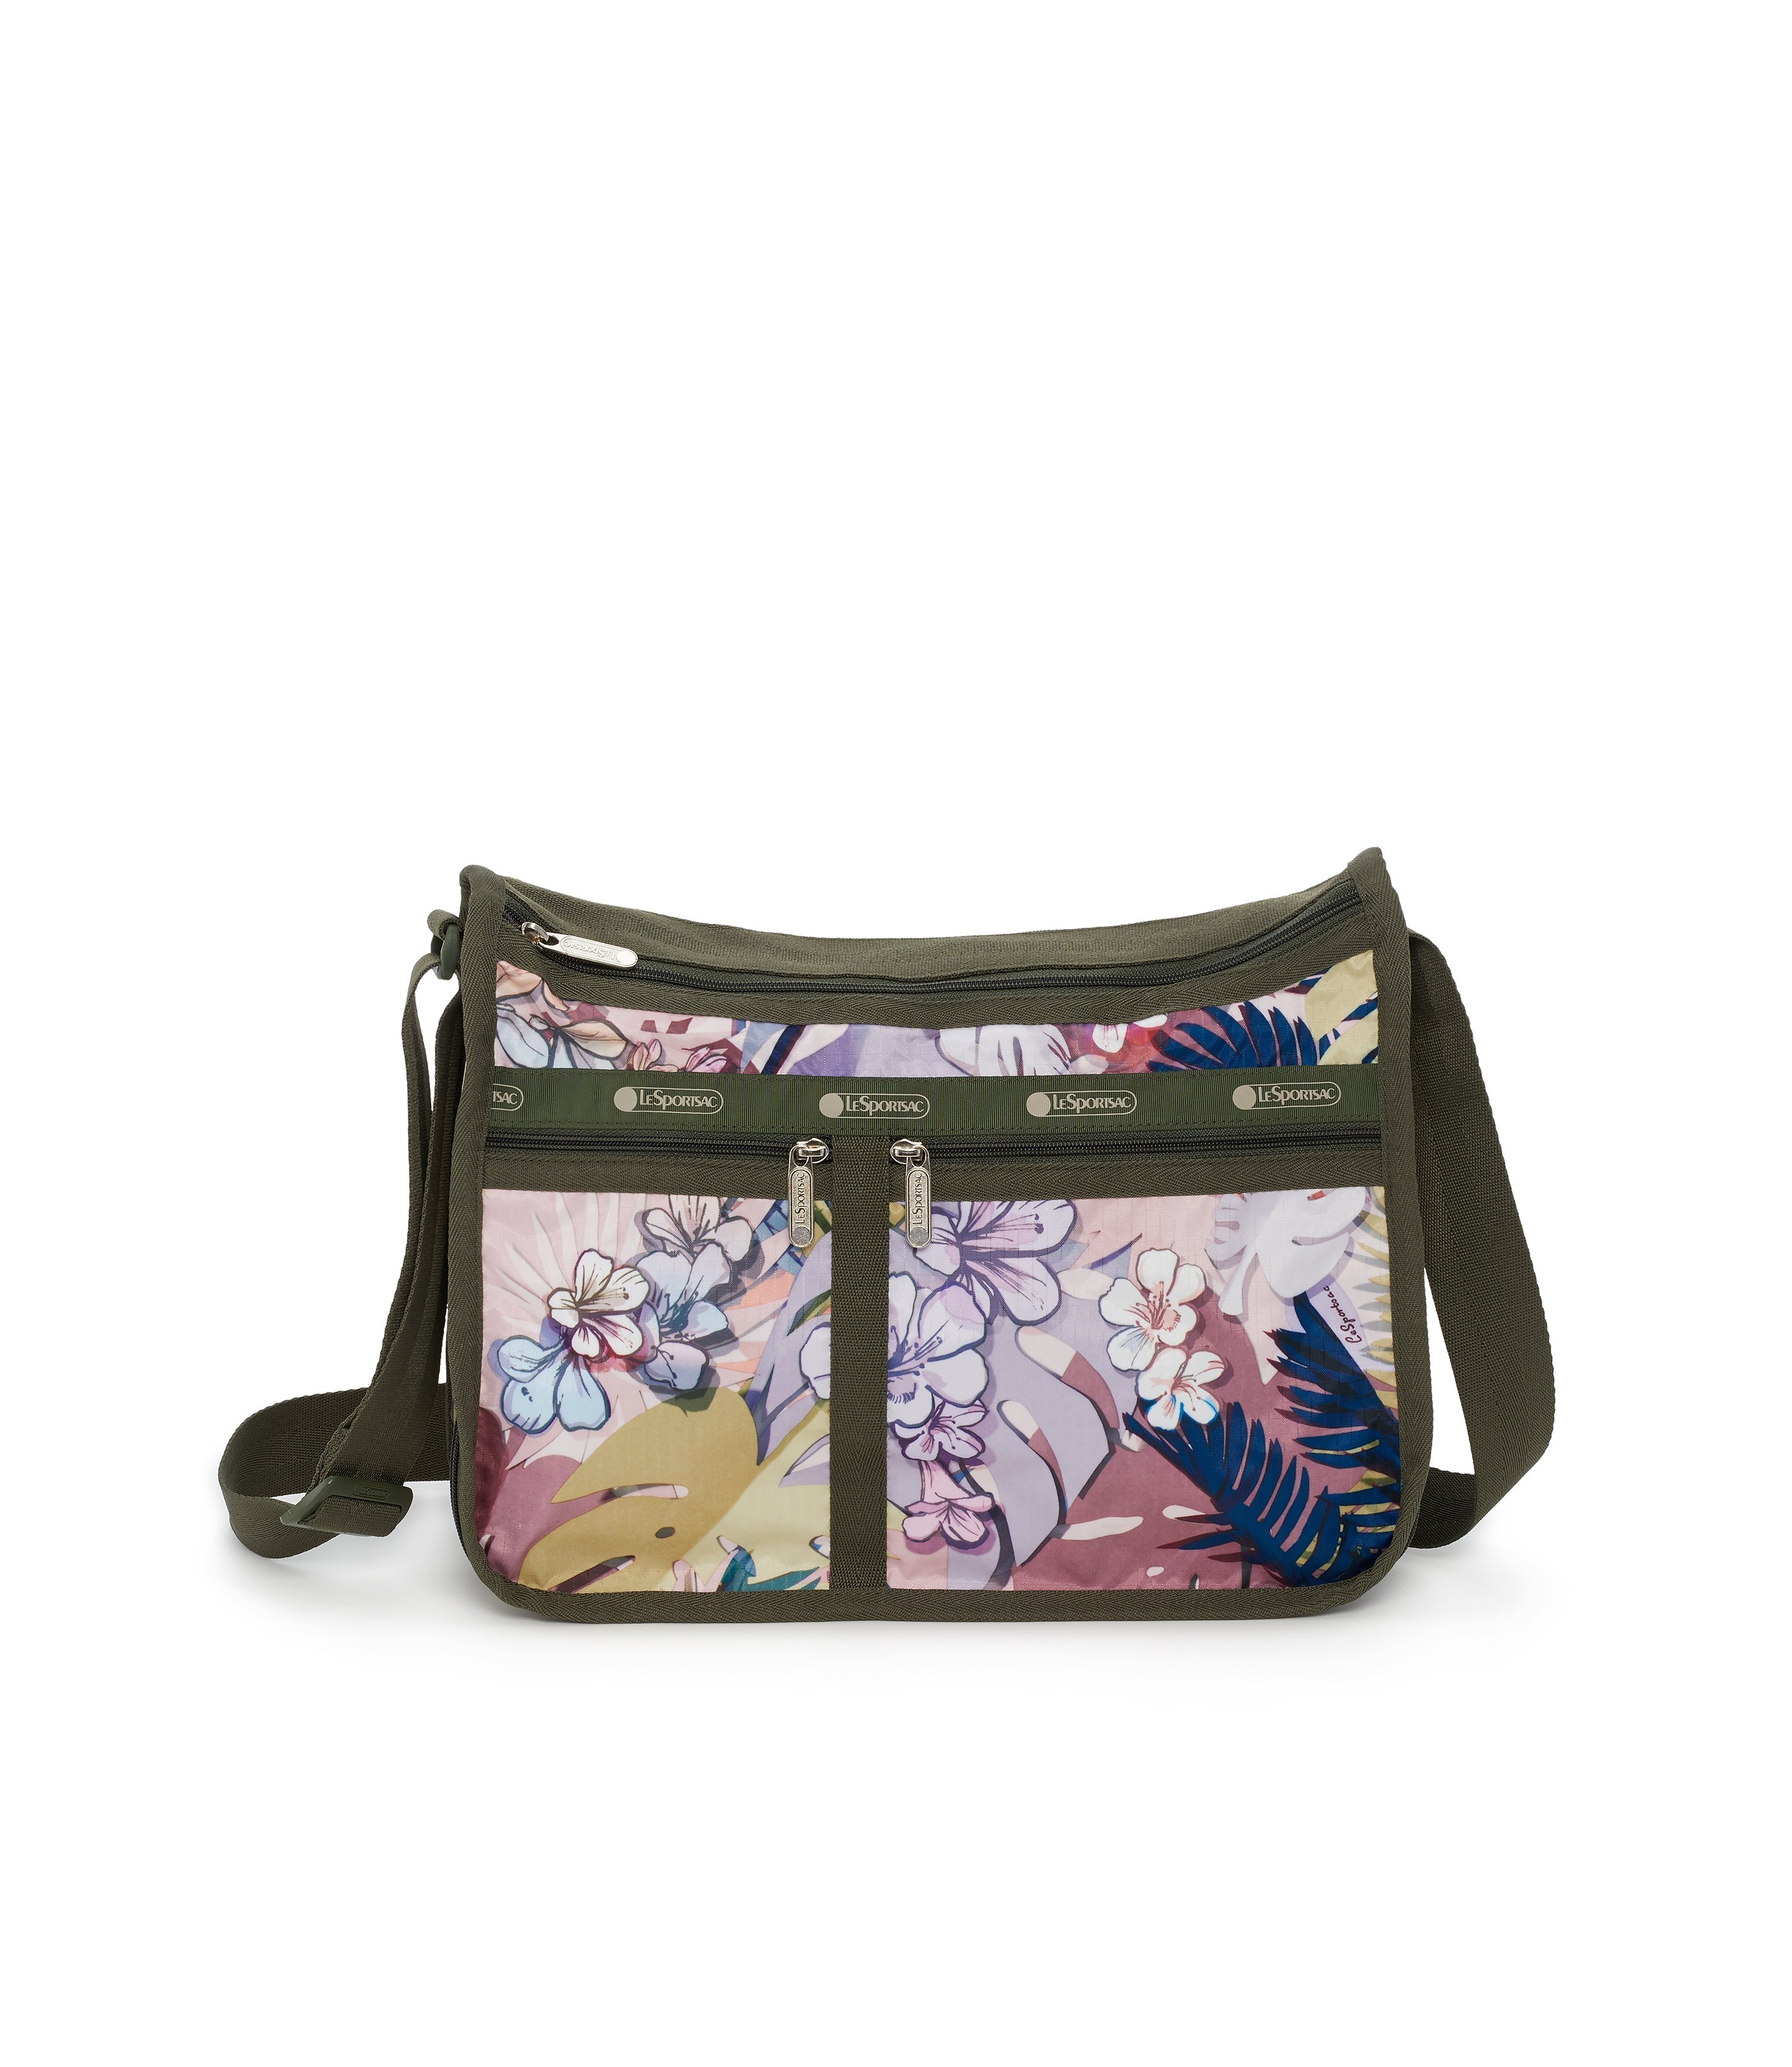 Deluxe Everyday Bag, Nylon Handbags and Classic Purses, Expandable, Crossbody, South Beach Floral print